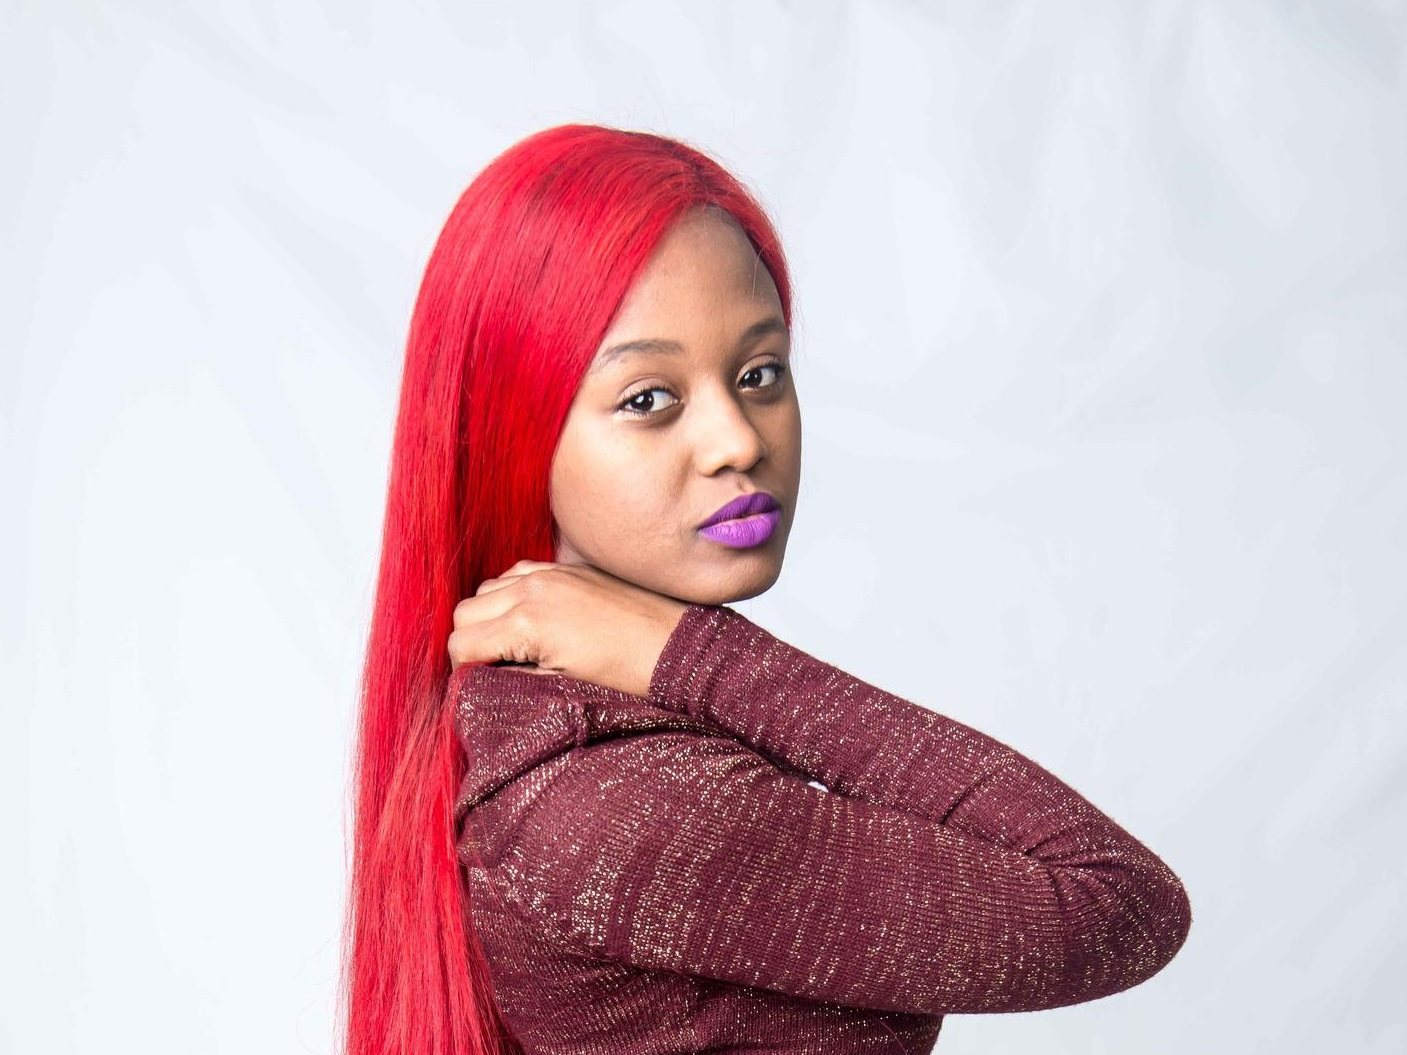 File: There's been an outpouring of support for singer Babes Wodumo on social media, after a live Instagram video showing her being beaten by a boyfriend, Mampintsha.